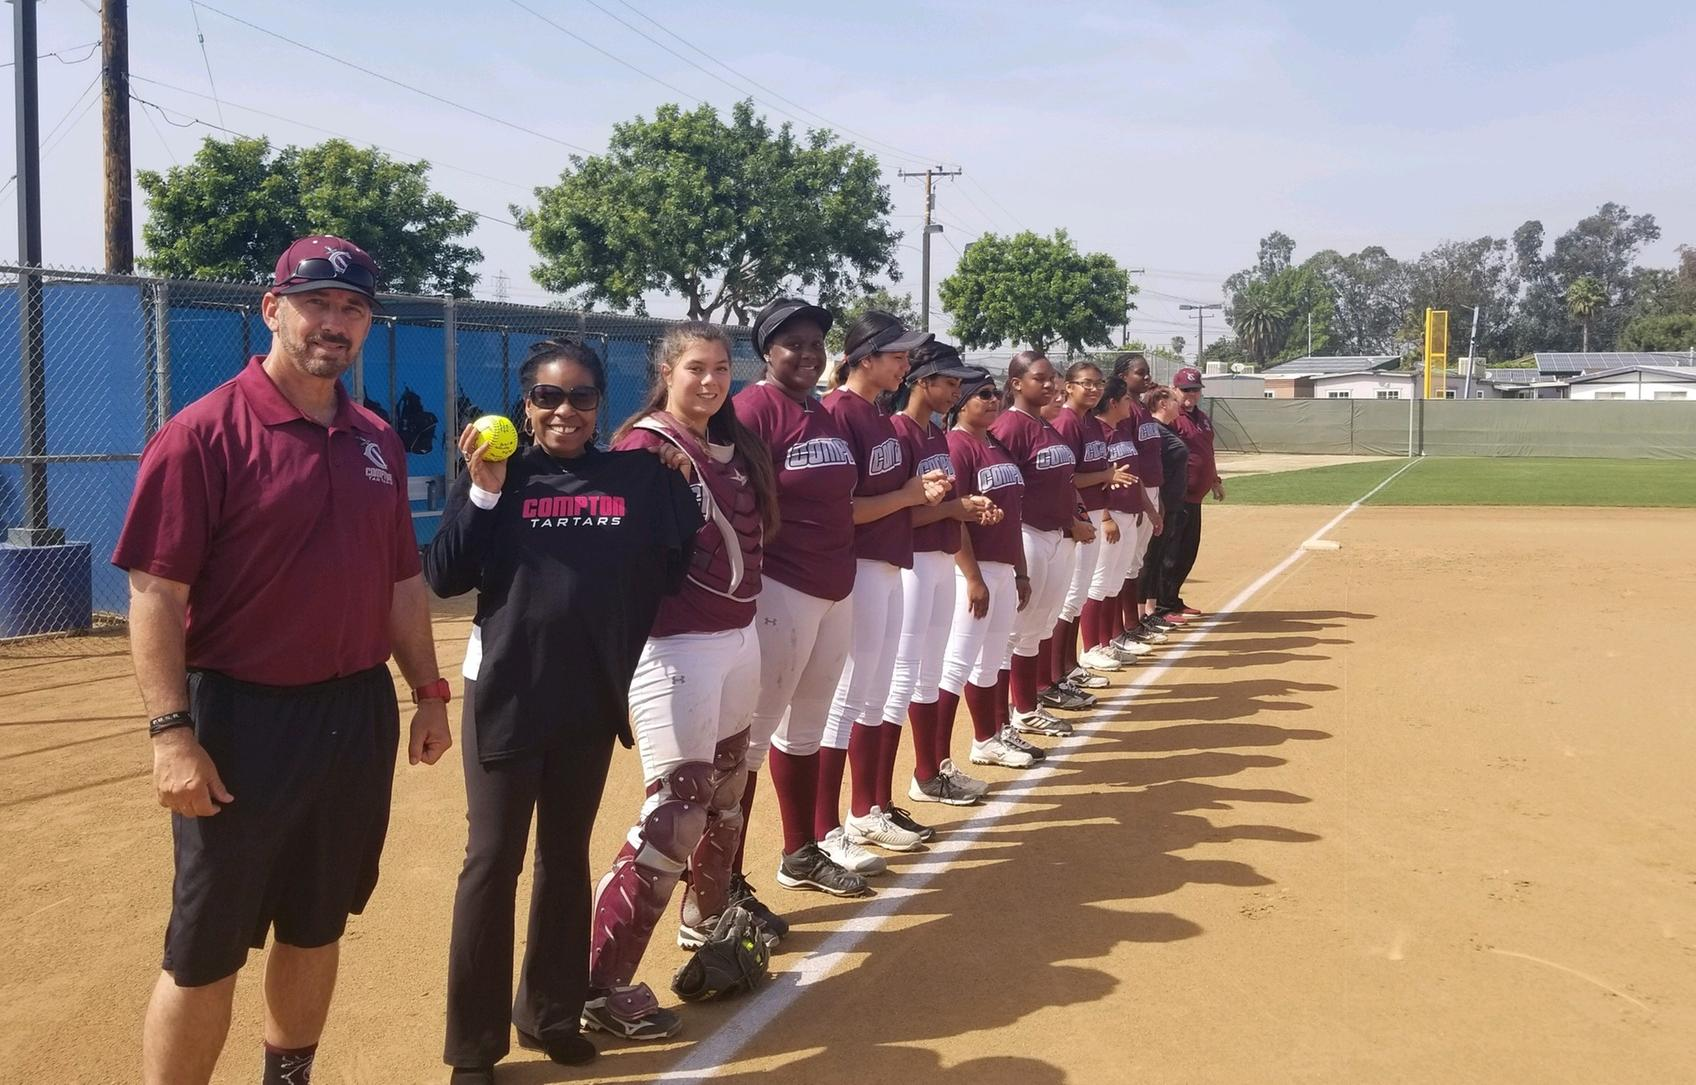 Softball Falls to Long Beach; Honors Compton Faculty and Staff